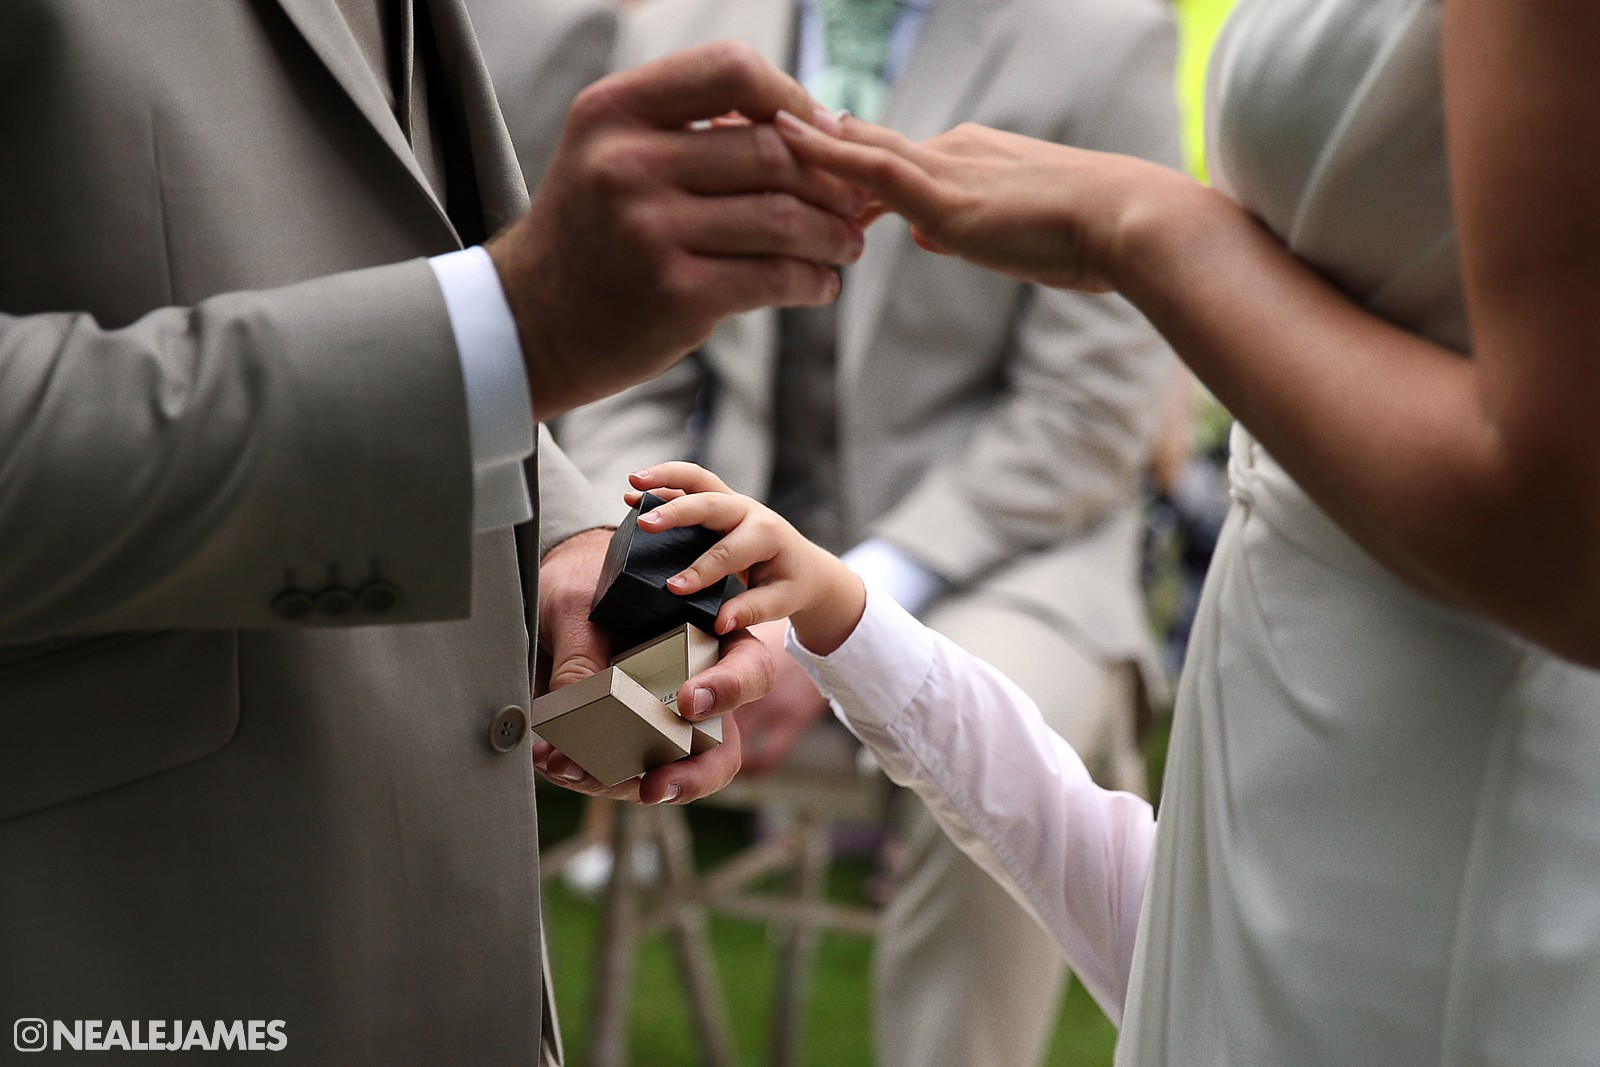 Picture of a boy reaching up to pass a groom the wedding ring